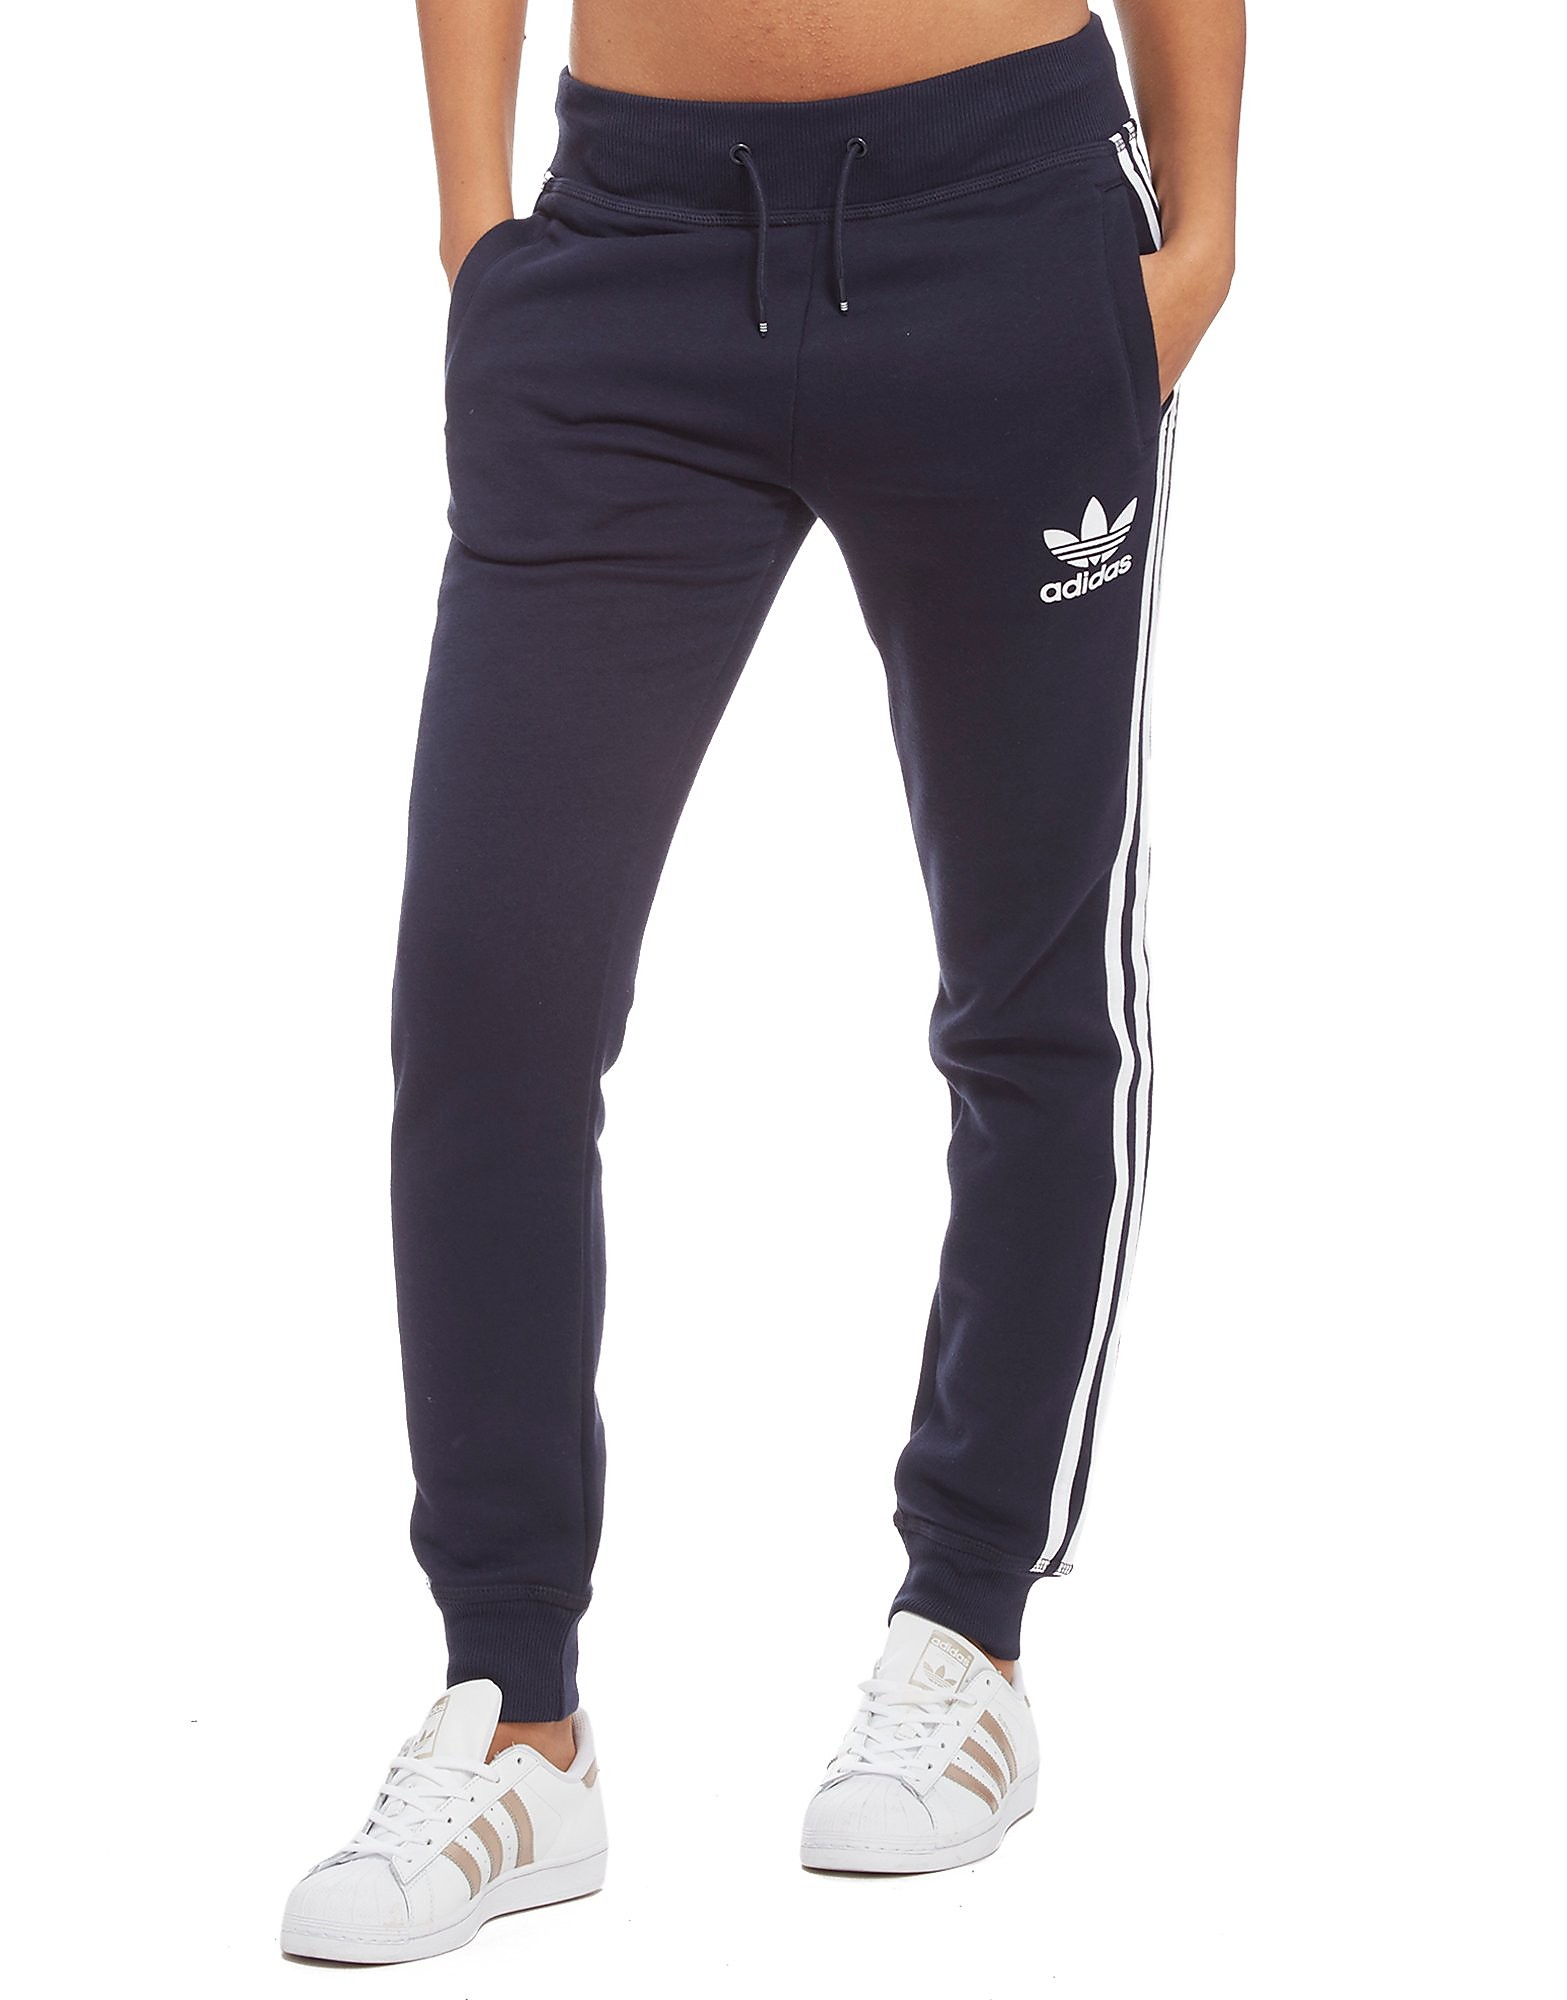 adidas Originals California Track Pants